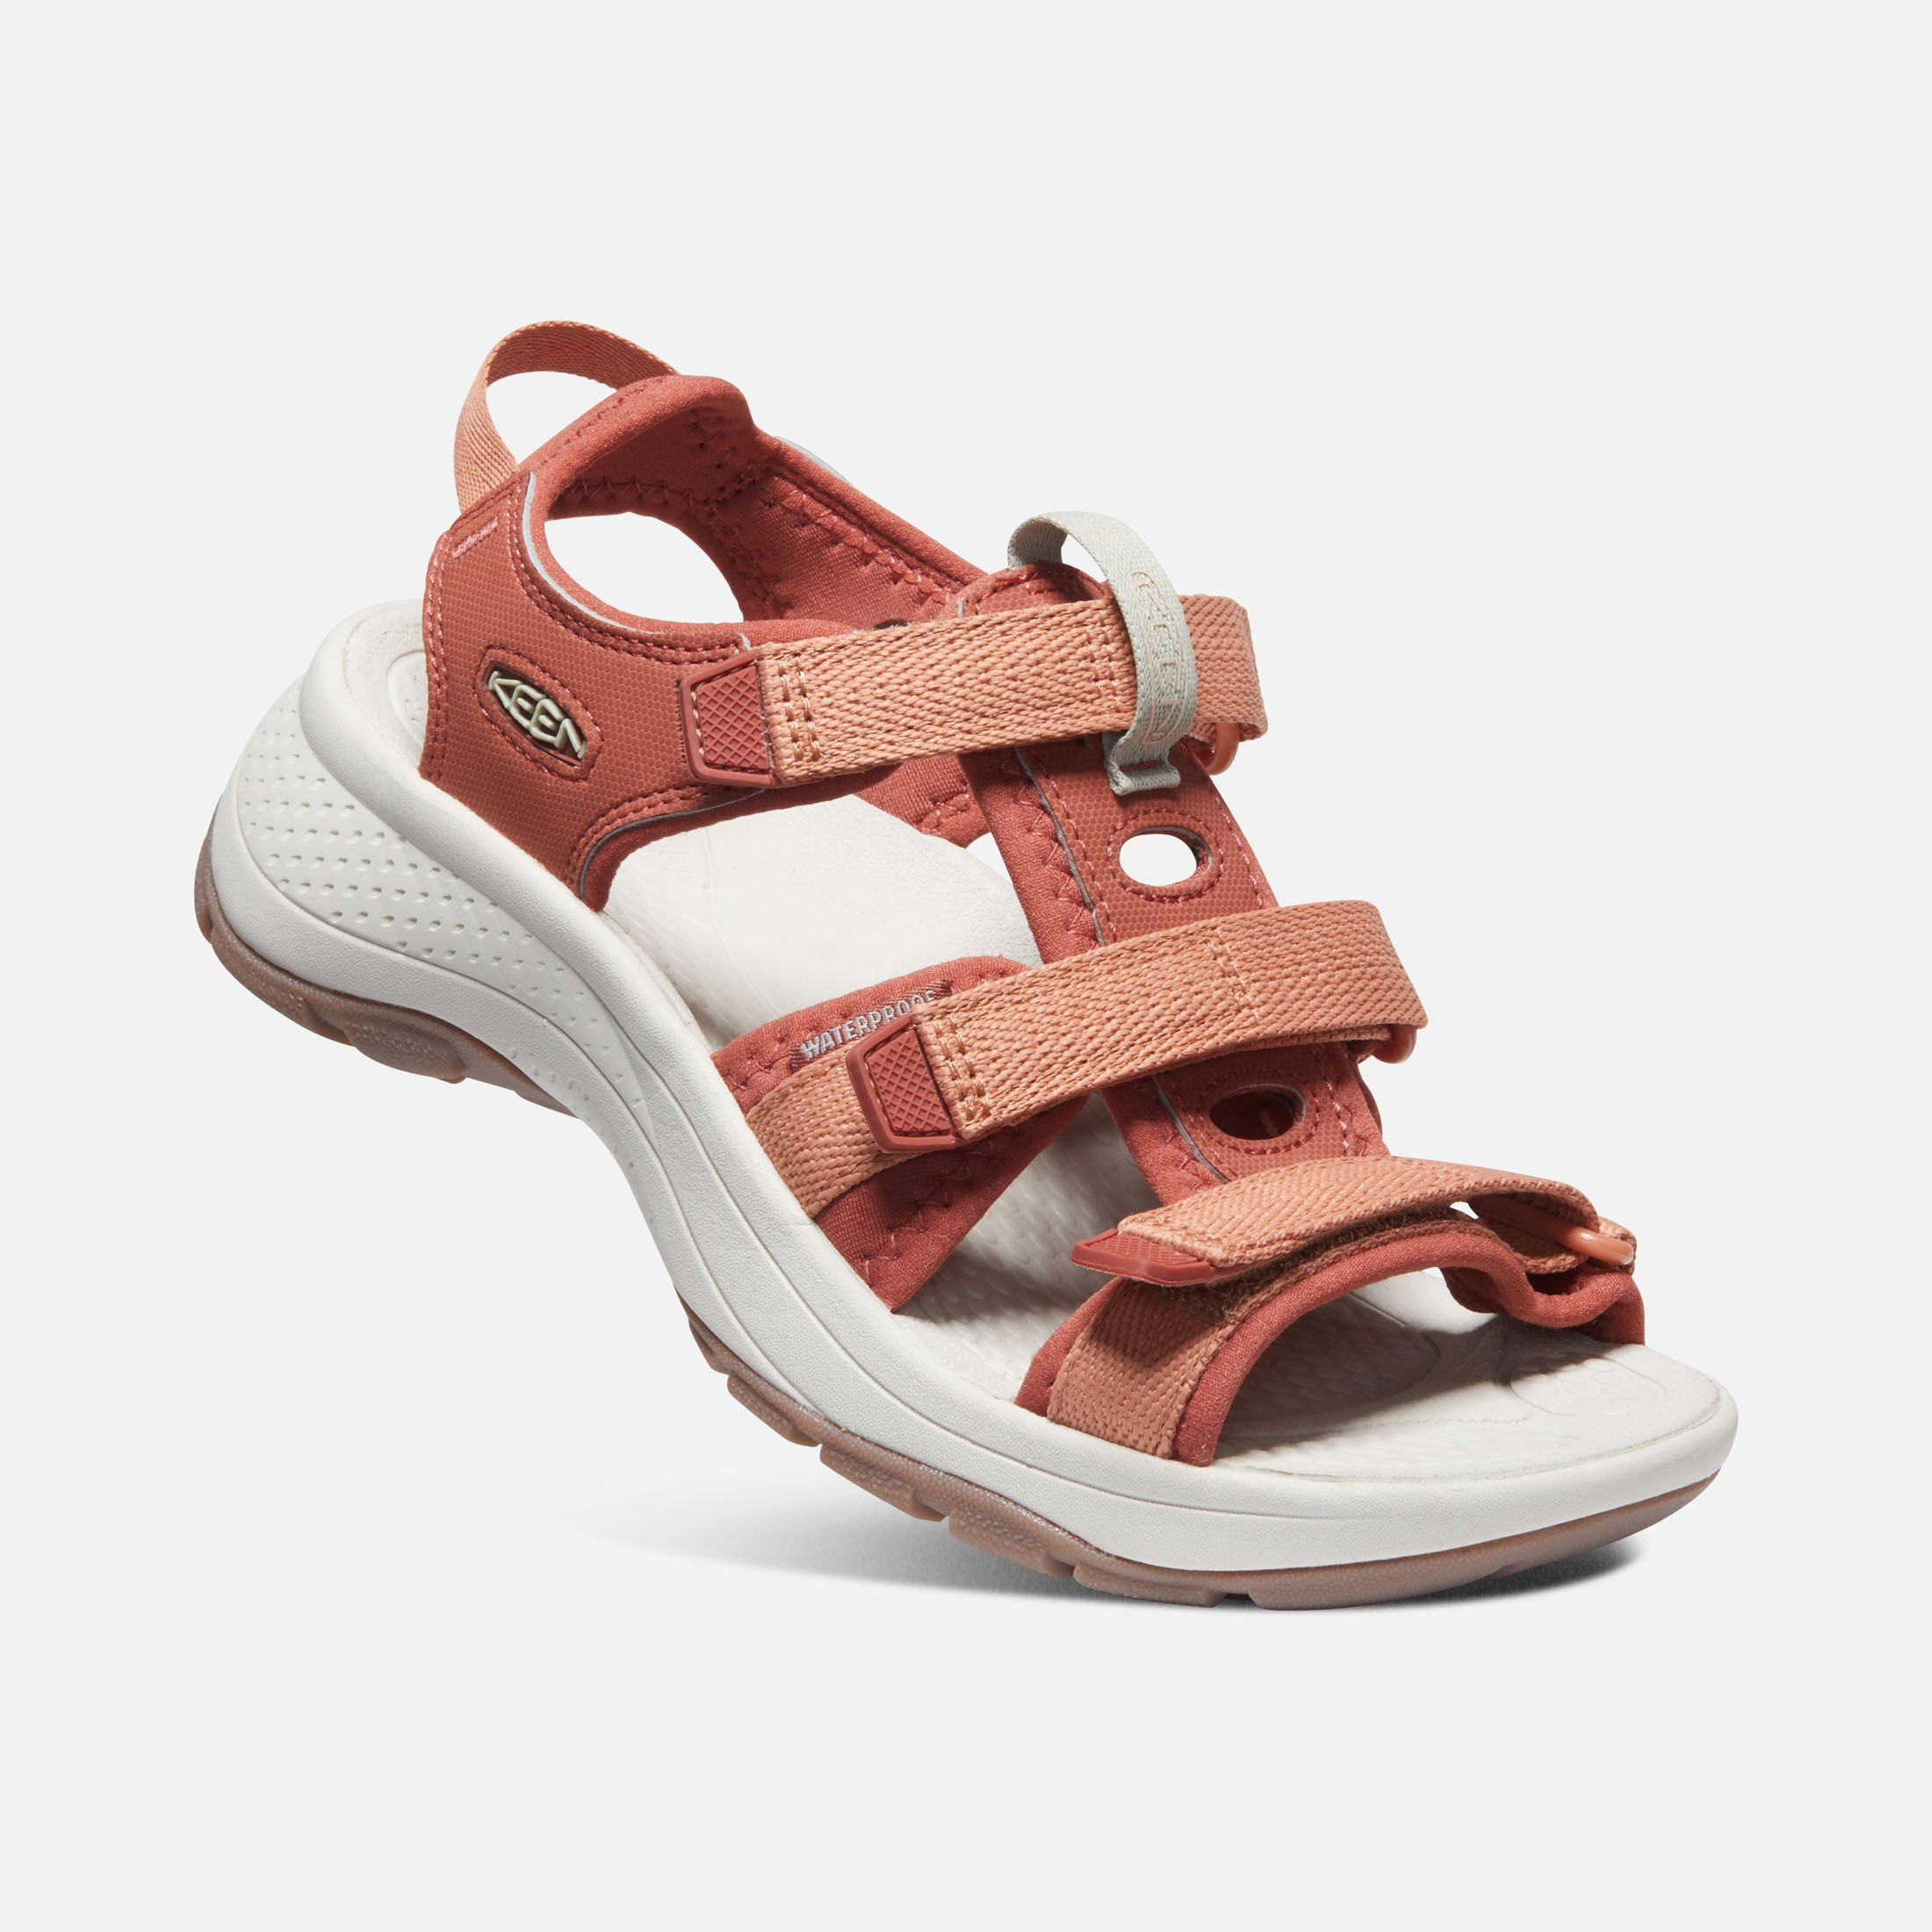 Astoria West Open Toe Sandal - Women's